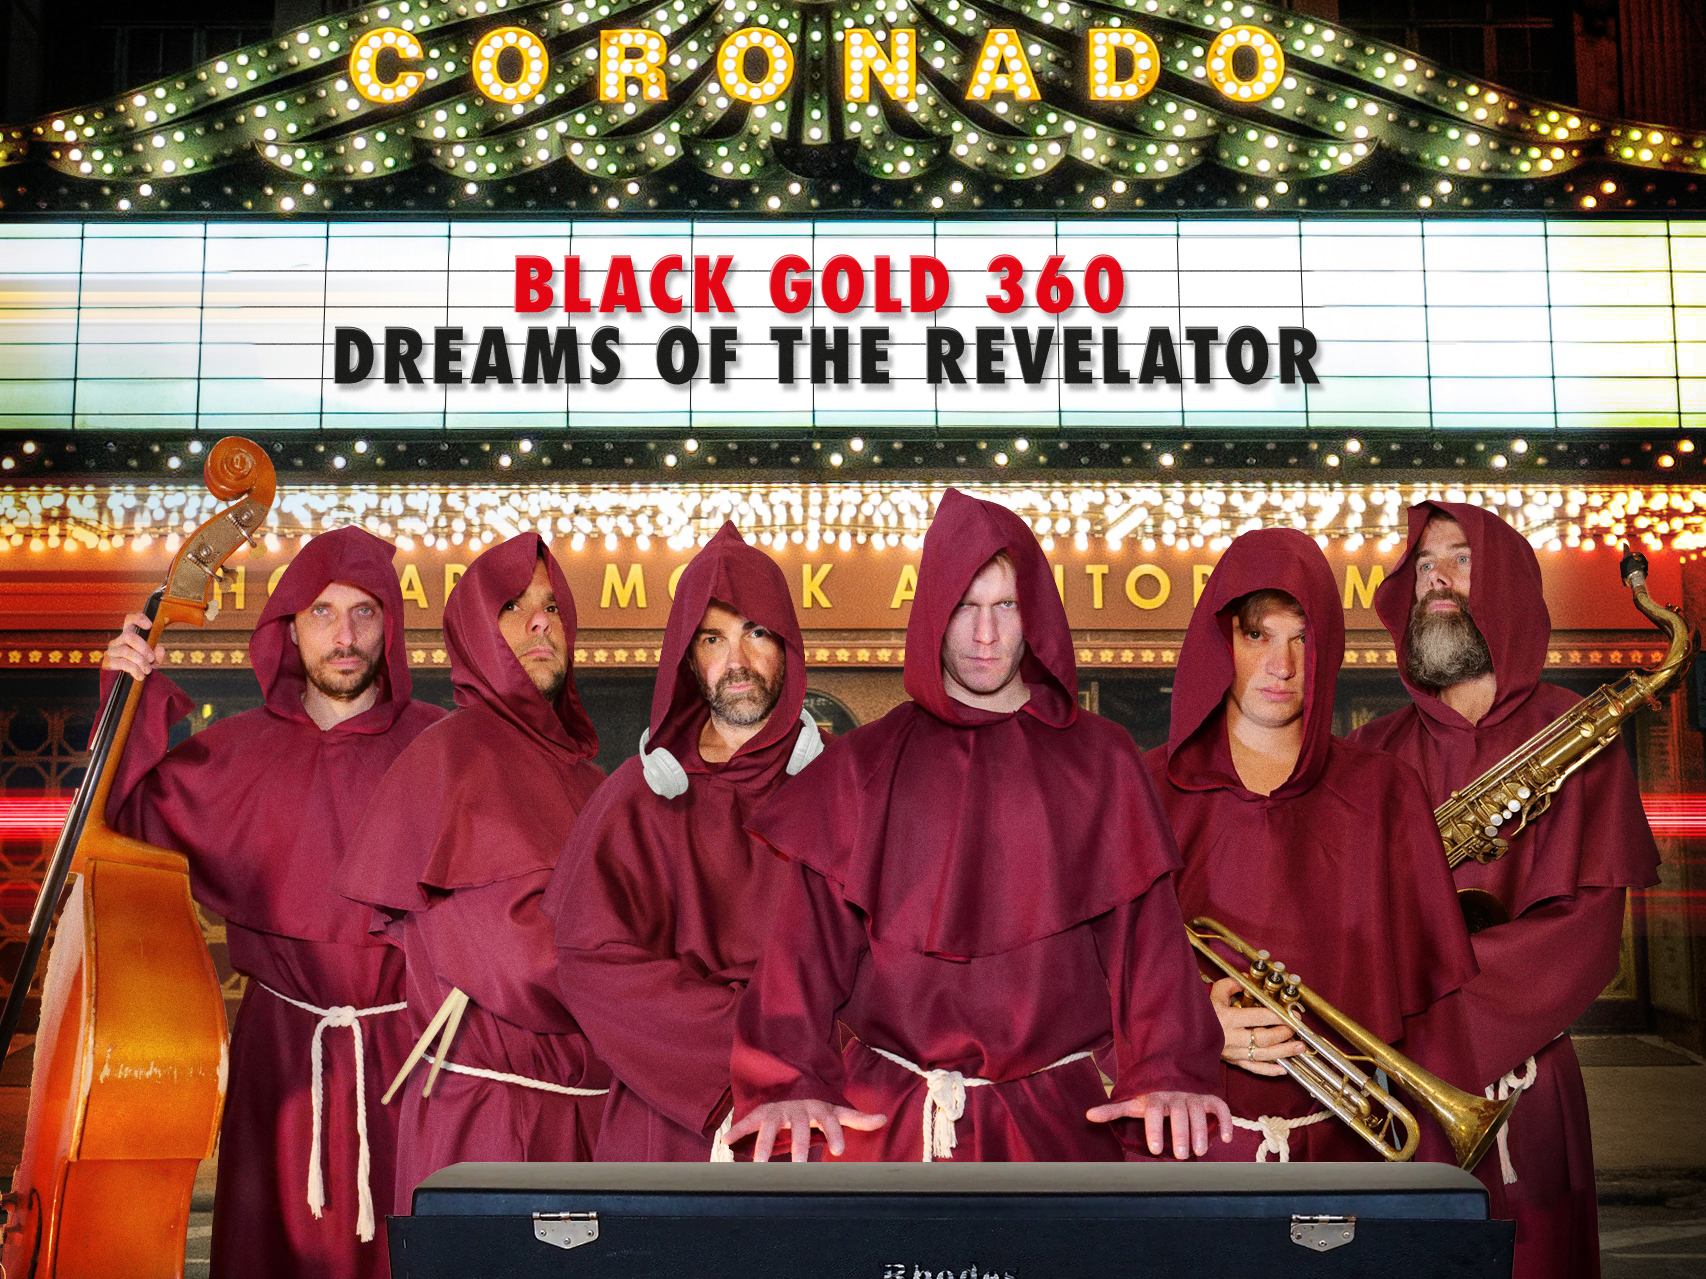 Black Gold 360_Dreams_of_The_Revelator_Band Photo XS (credit Paul Wolterink)